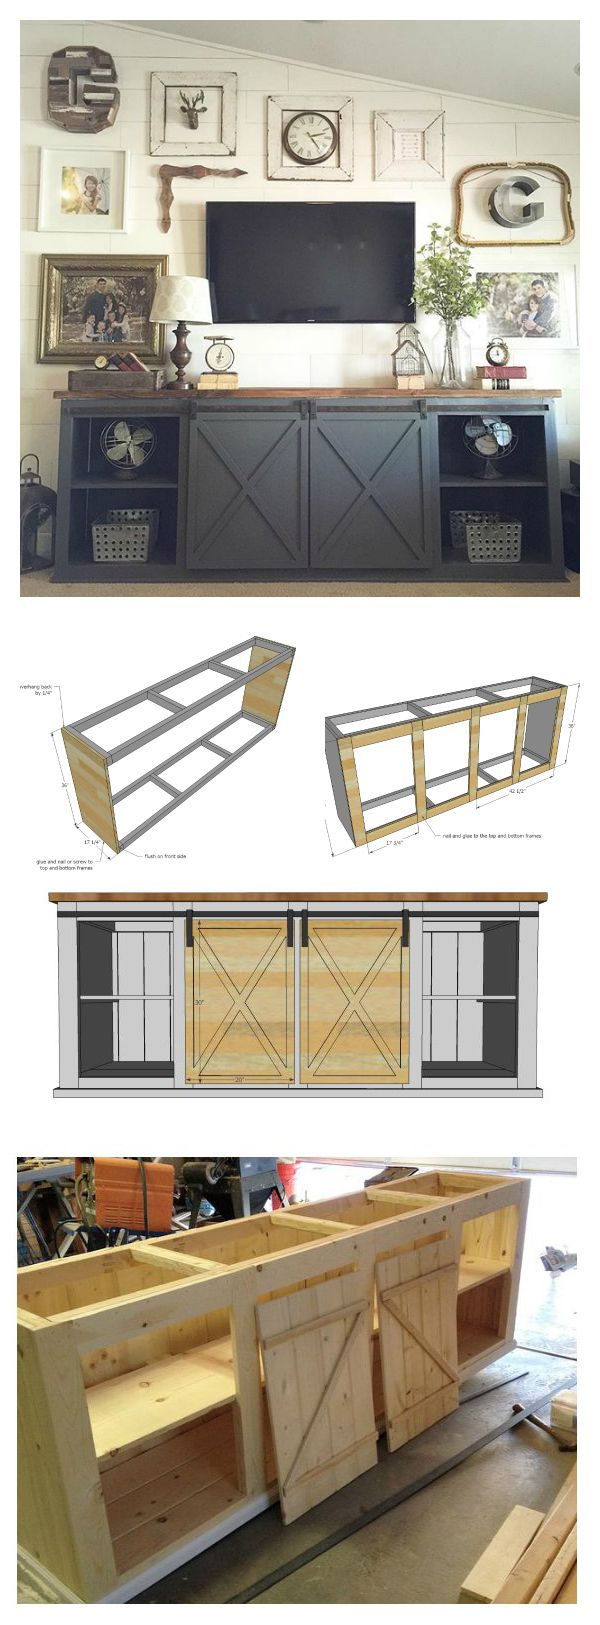 diy sliding door console plans by ana-white.com no plywood easy to make